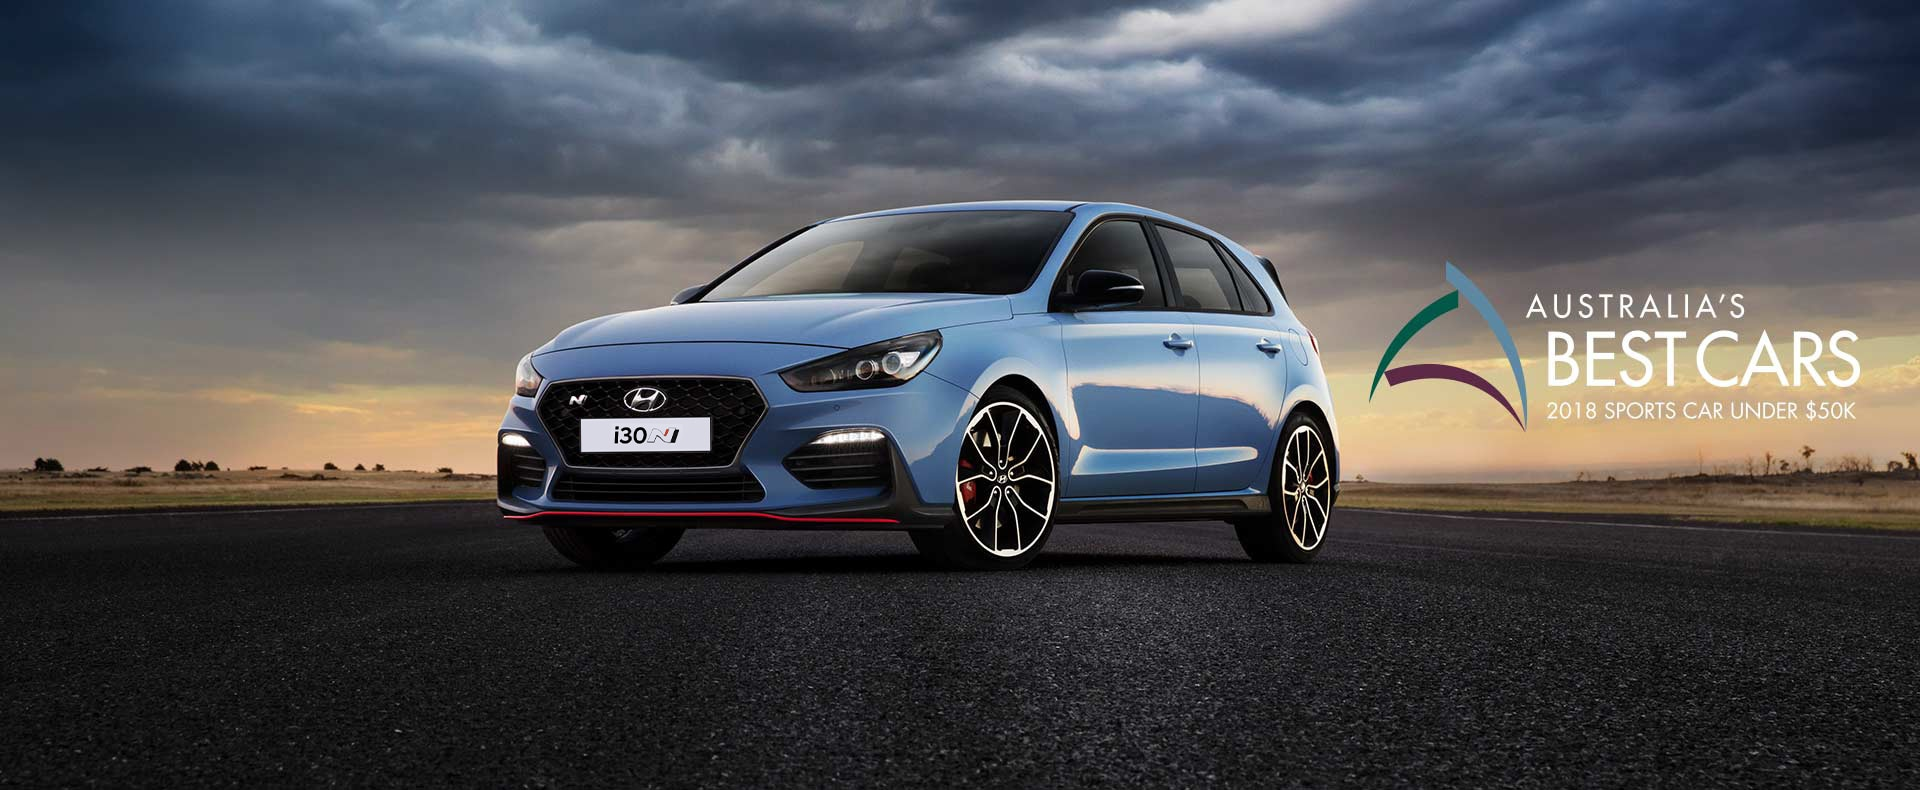 Hyundai i30 N wins Australia's Best Cars award.